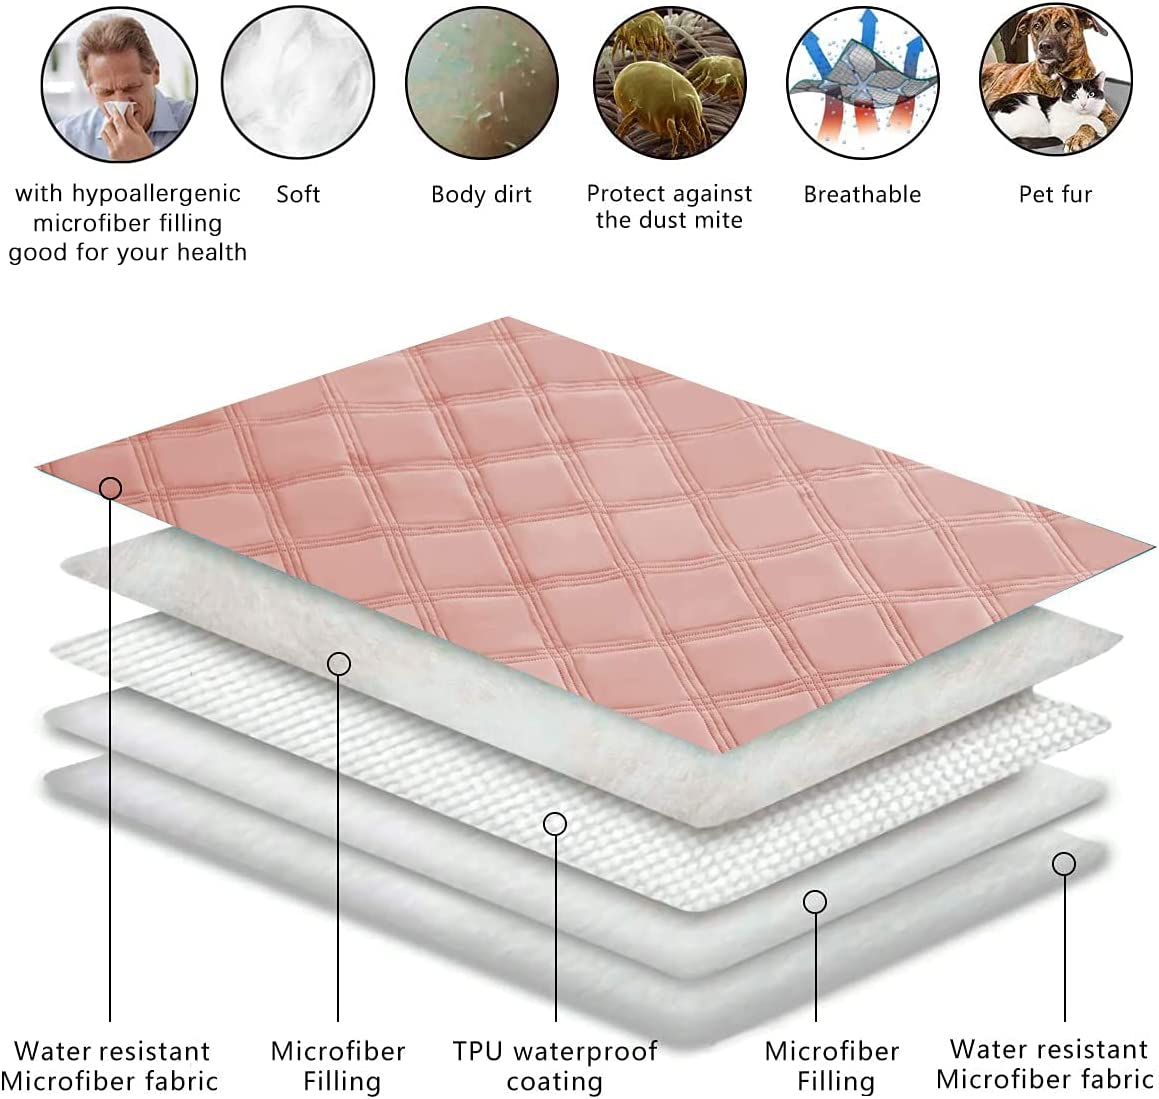 Ameritex Waterproof Dog Bed Cover Pet Blanket with Anti-Slip Back for Furniture Bed Couch Sofa 2 pcs (30x30 Inches, Light Pink) : Kitchen & Dining